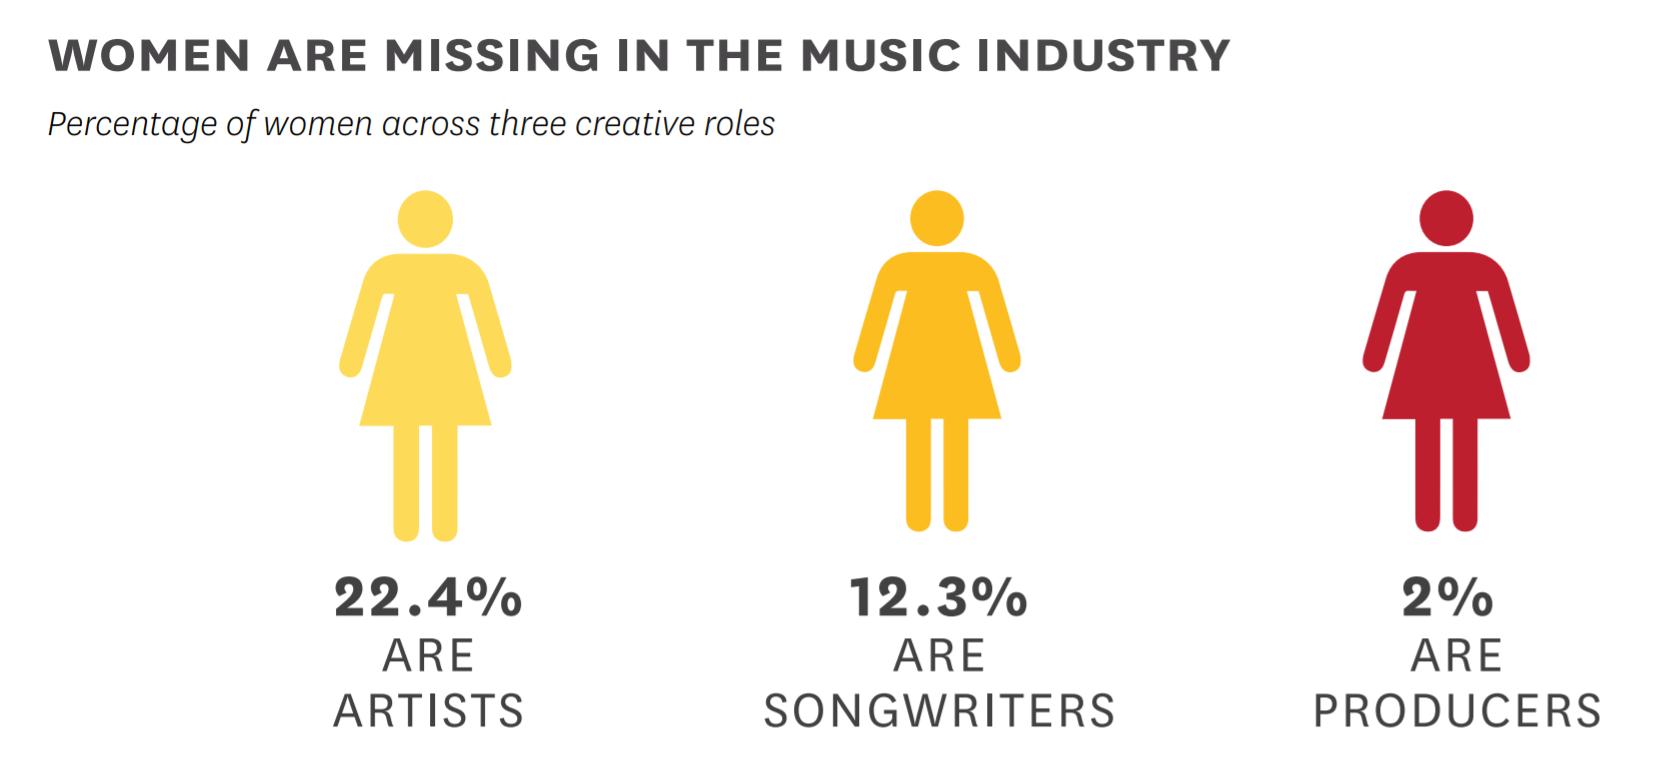 Women vastly underrepresented in music, says new report